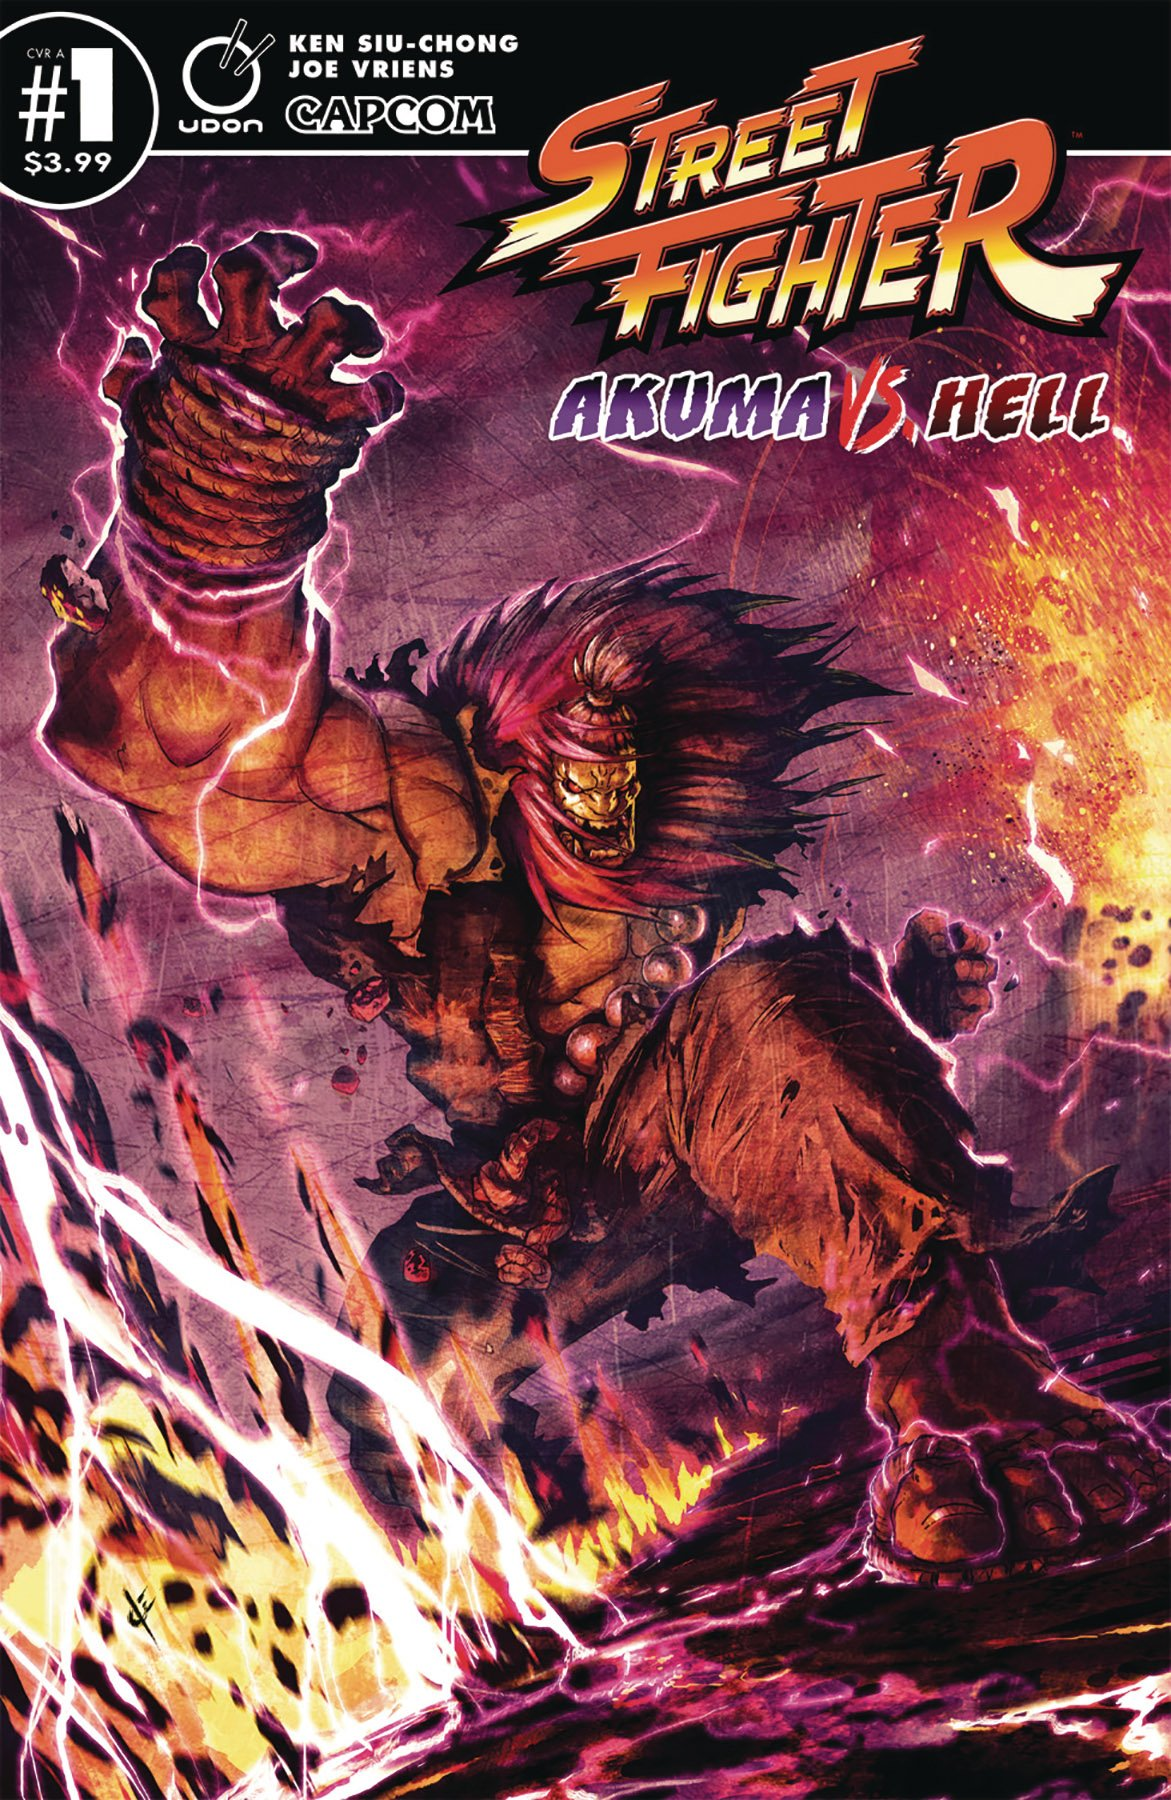 Street Fighter - Akuma vs. Hell (September 2019) (Cover A)